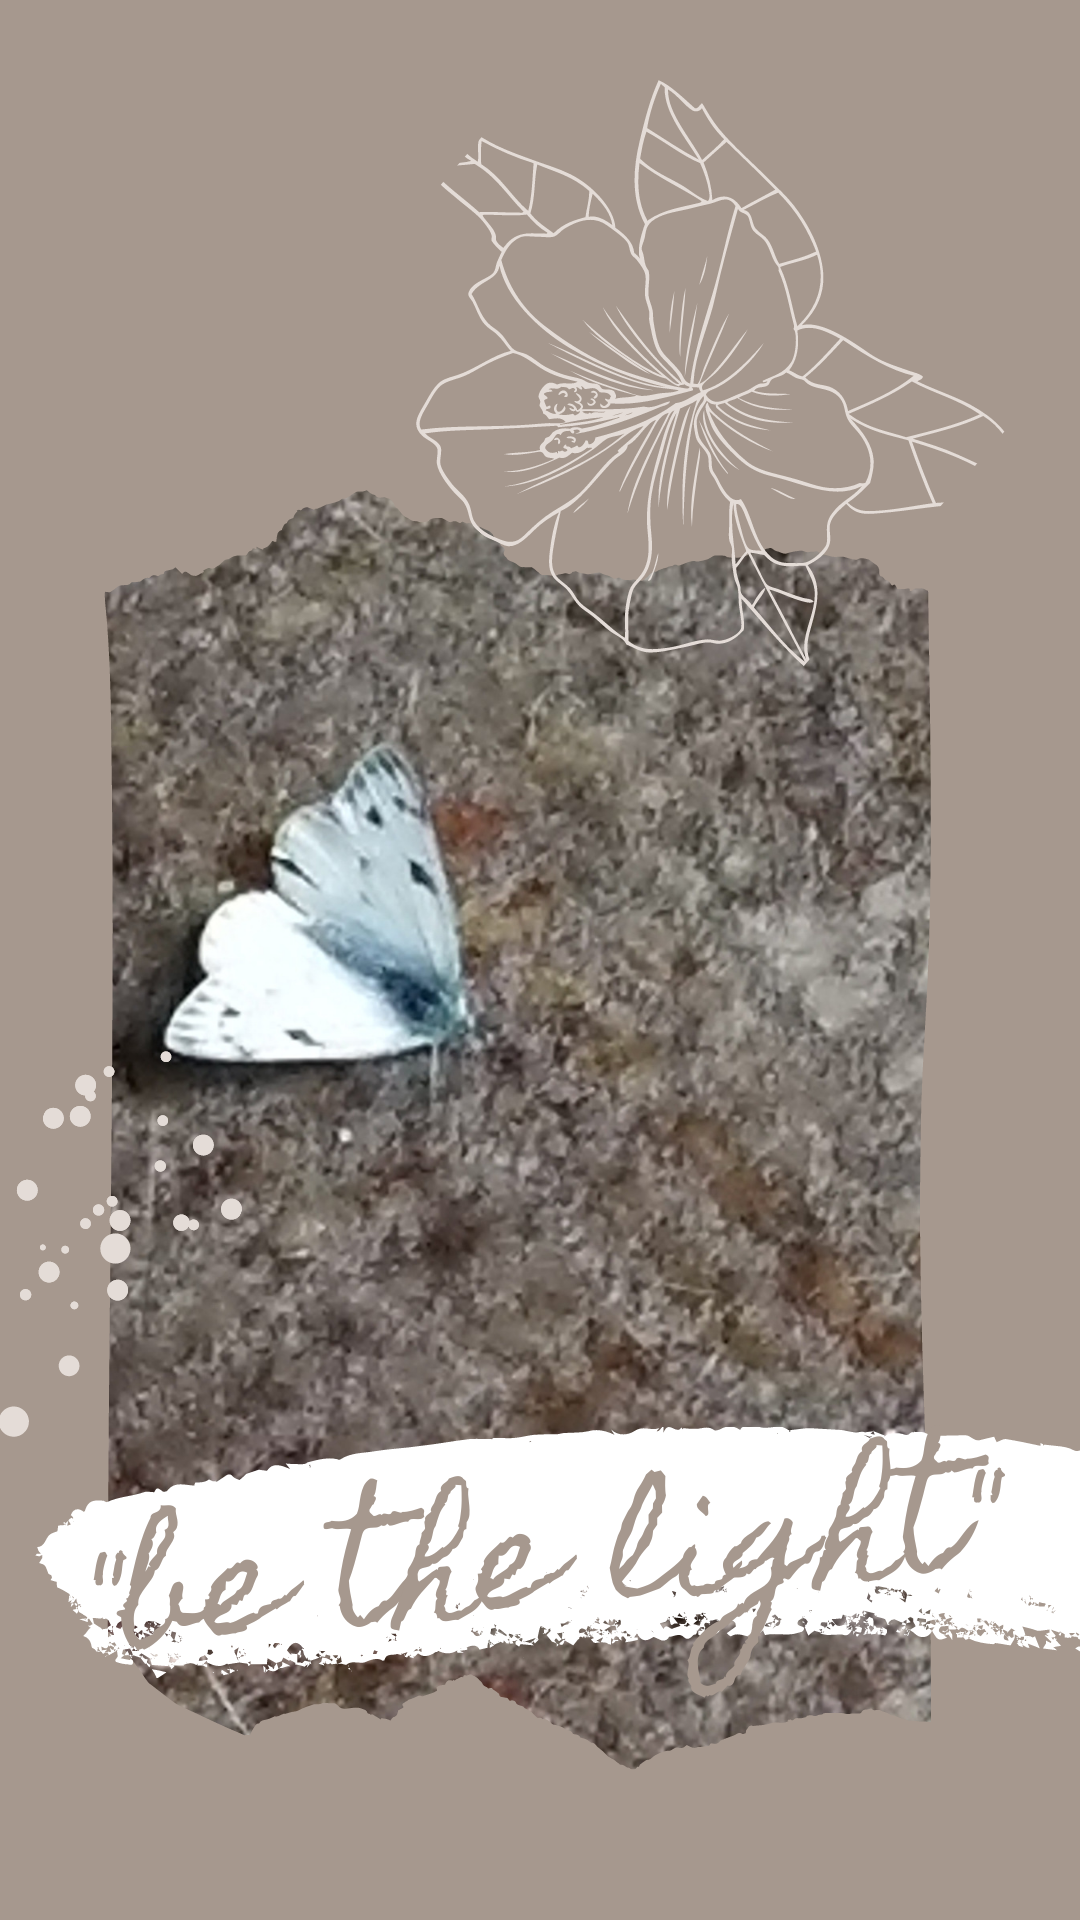 white butterfly, be the light, if you didn't have tomorrow,